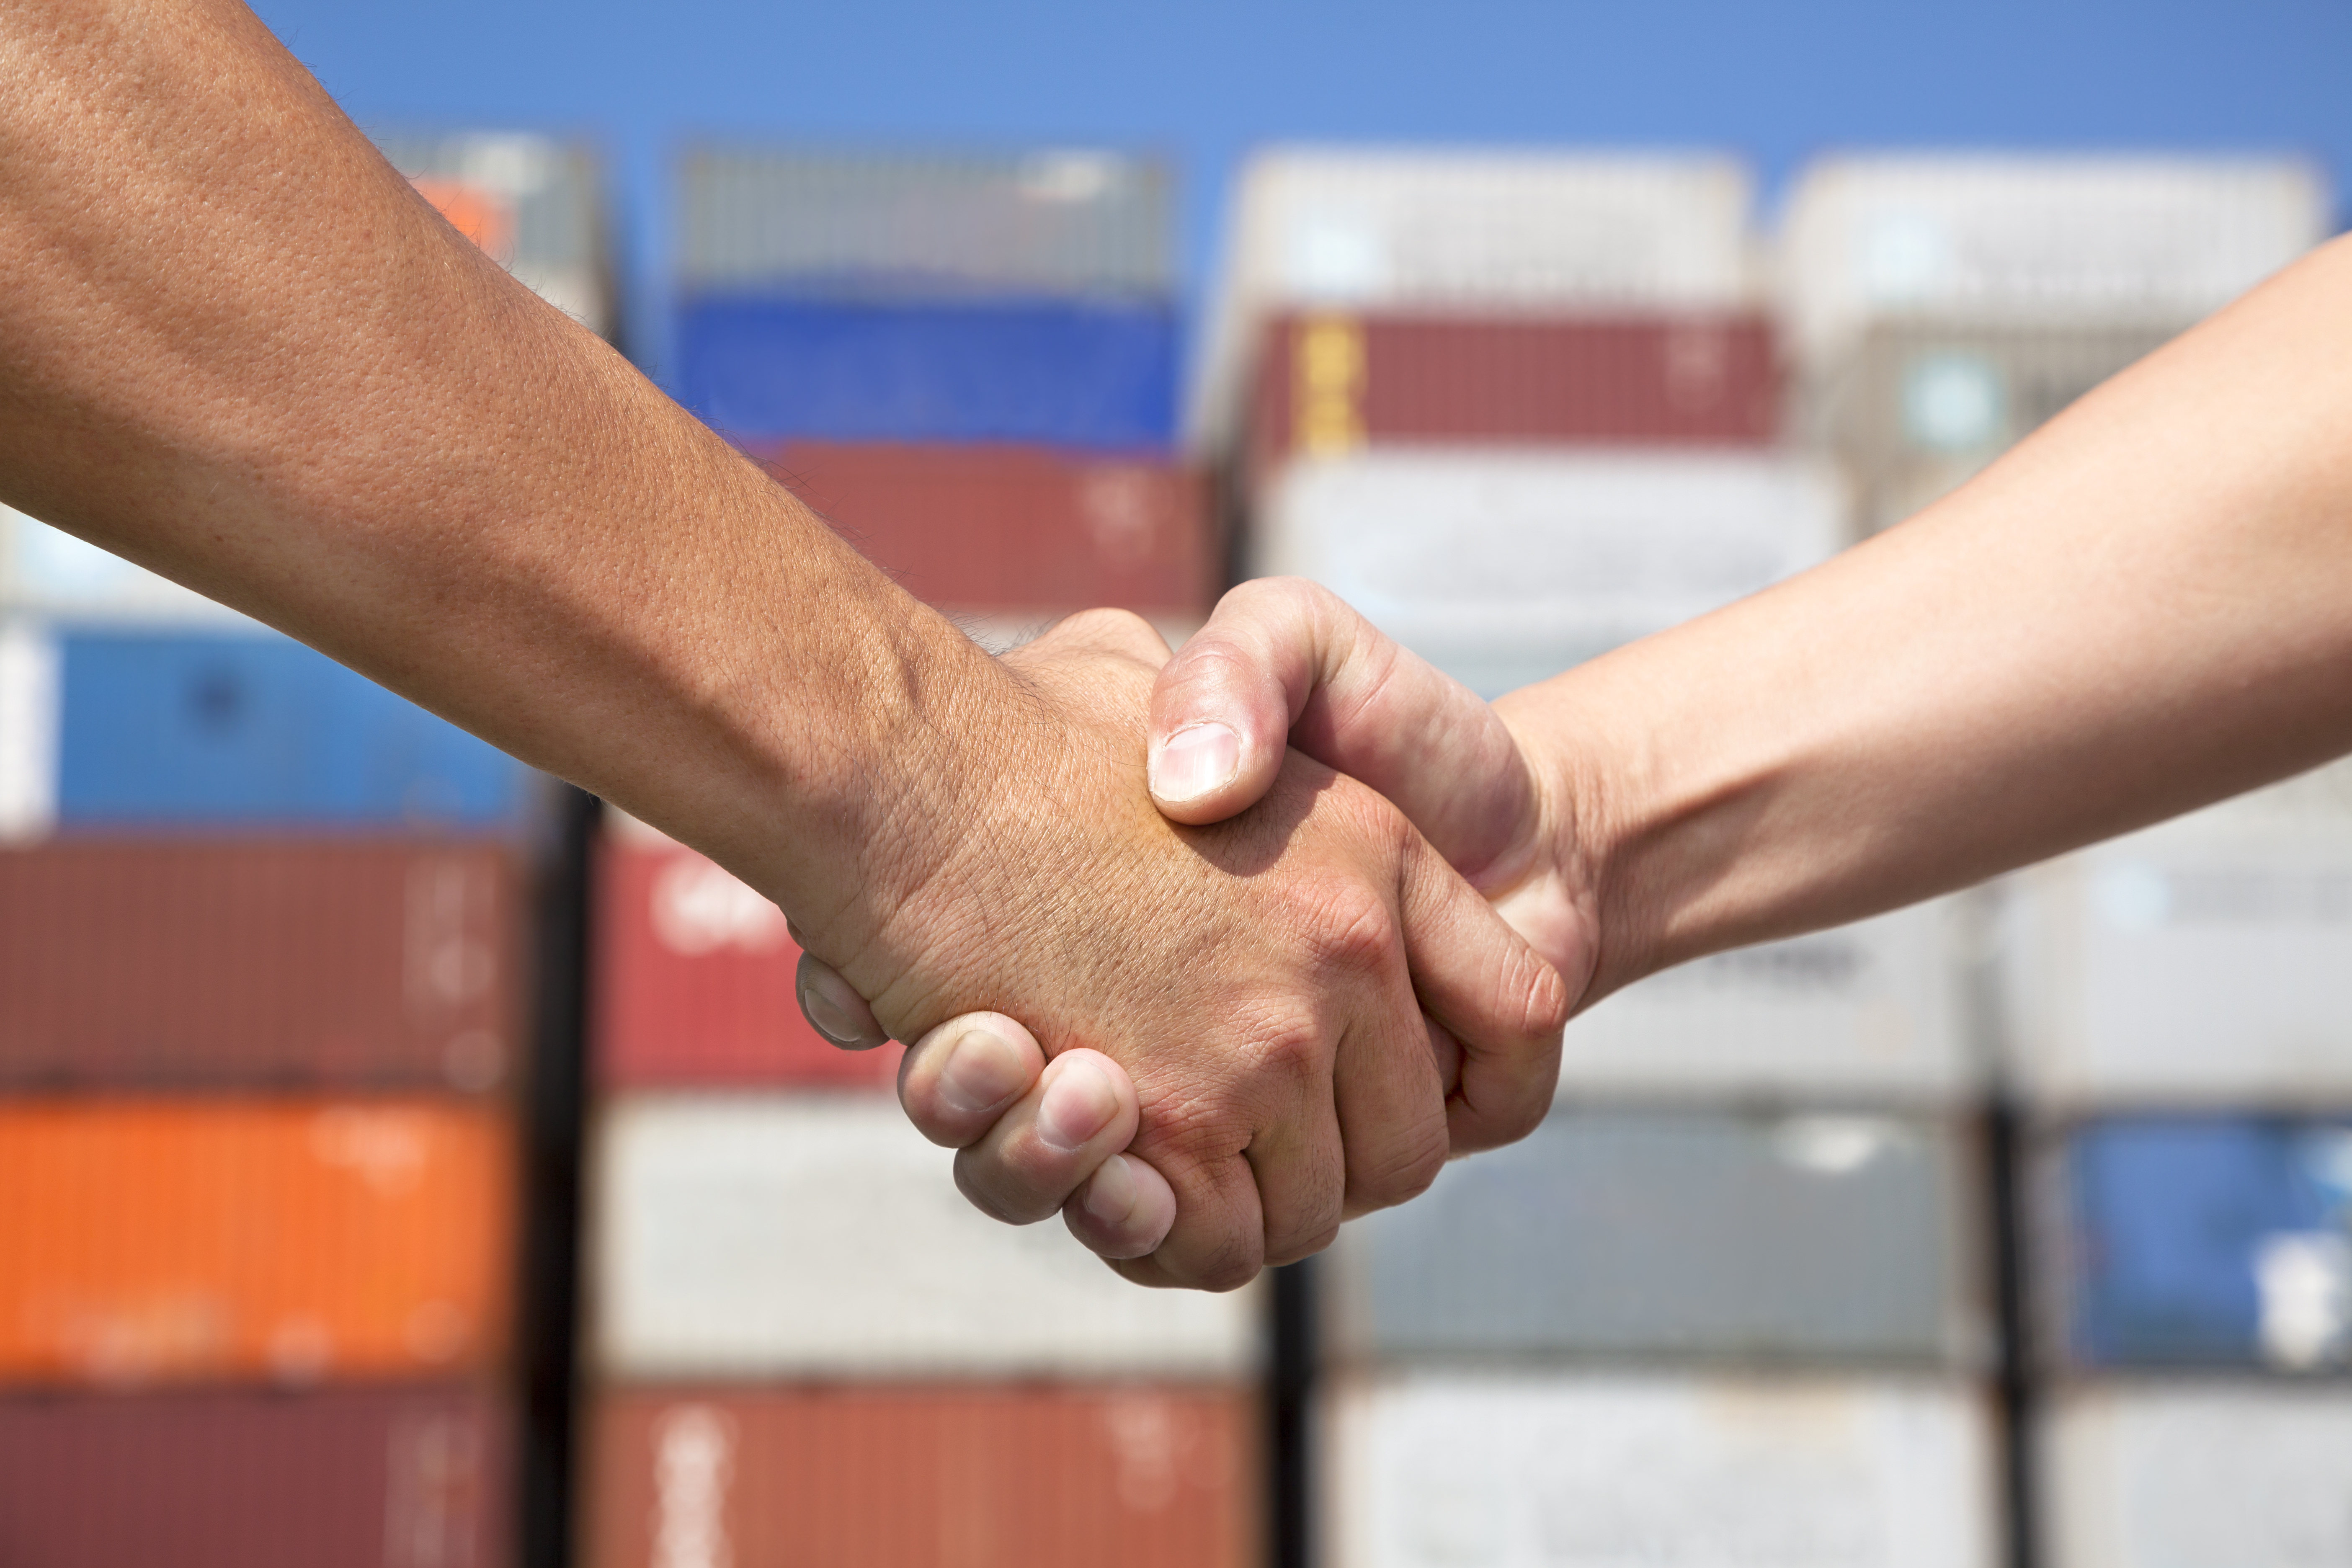 handshake in front of shipping containers